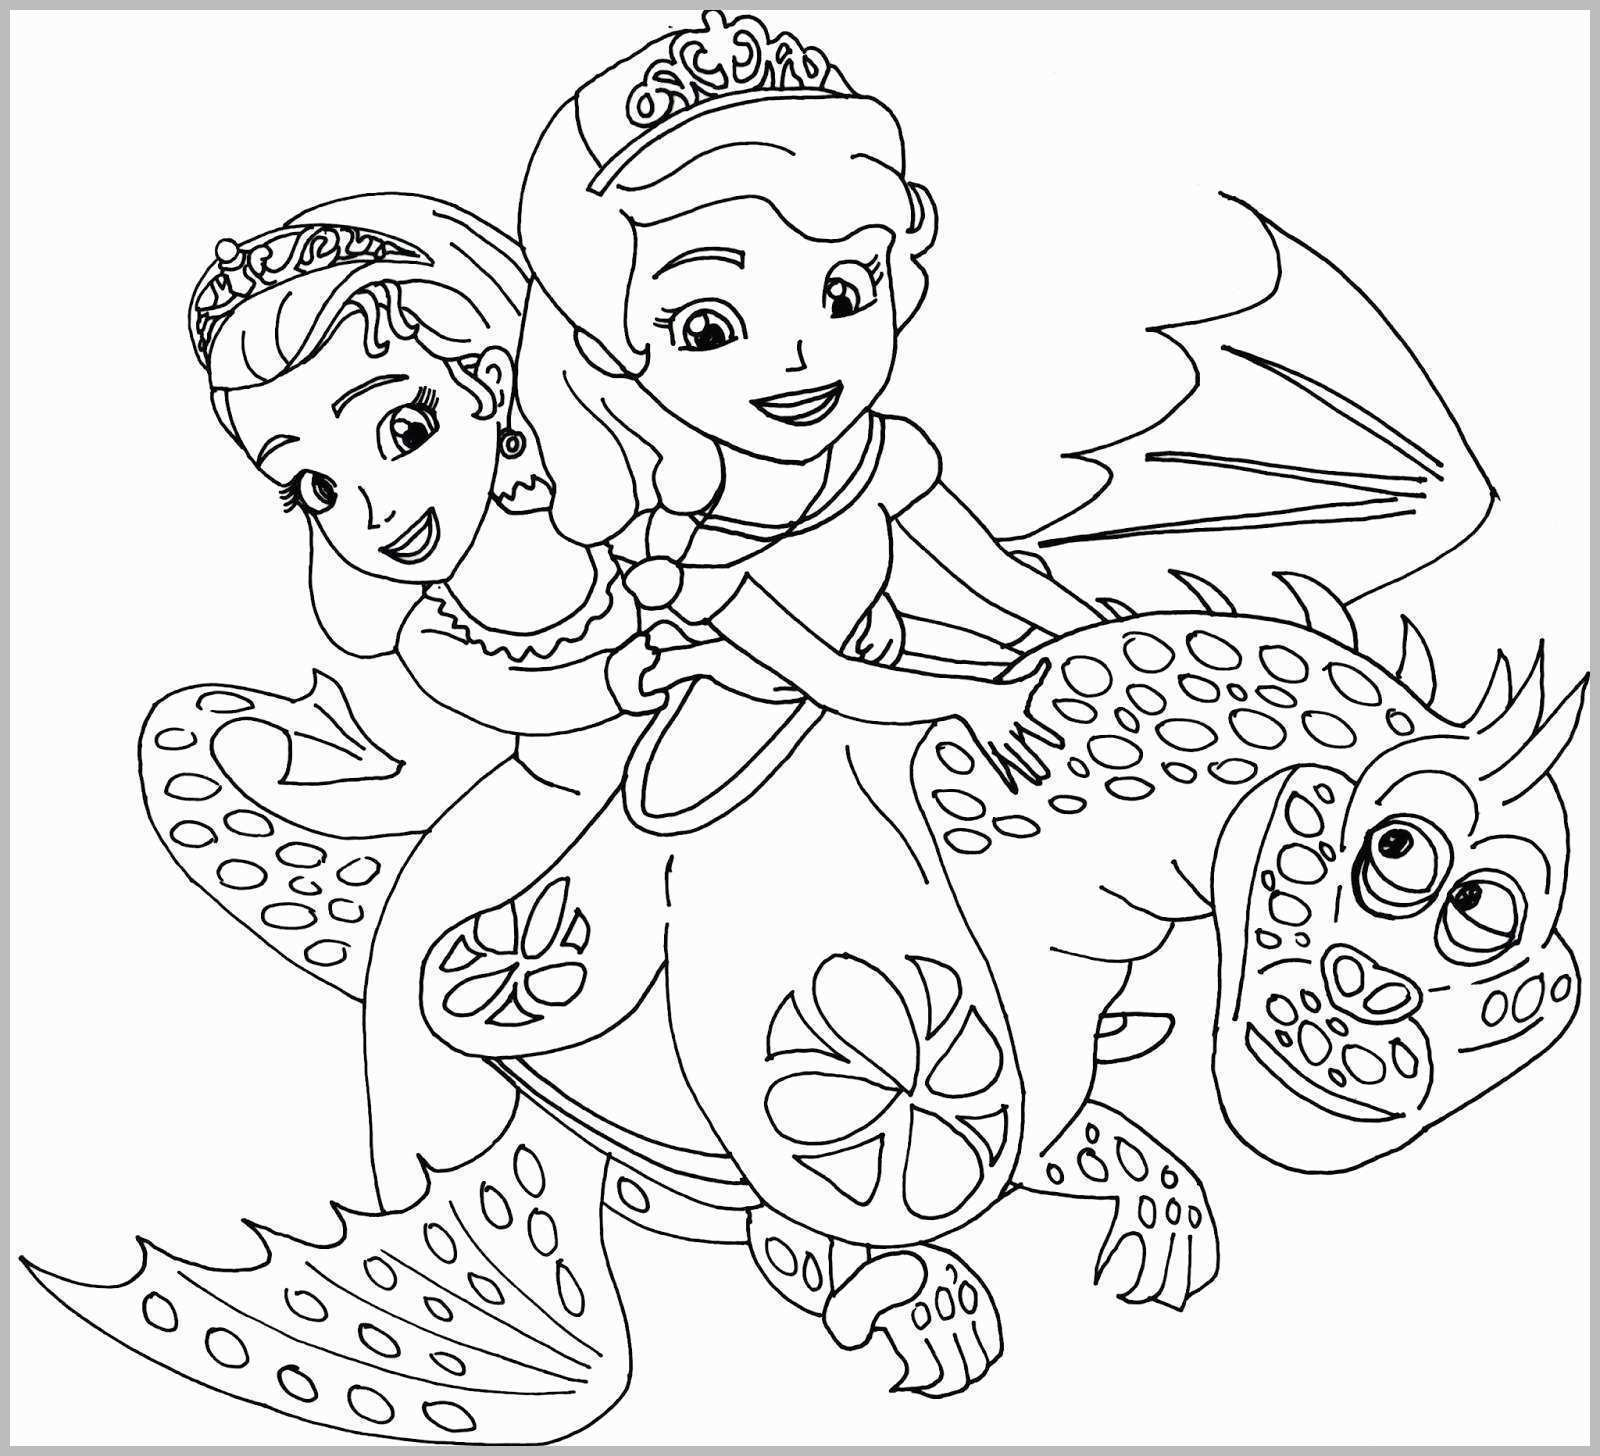 coloring pages of princess sofia coloring pages for girls free coloring pages printables princess coloring sofia pages of